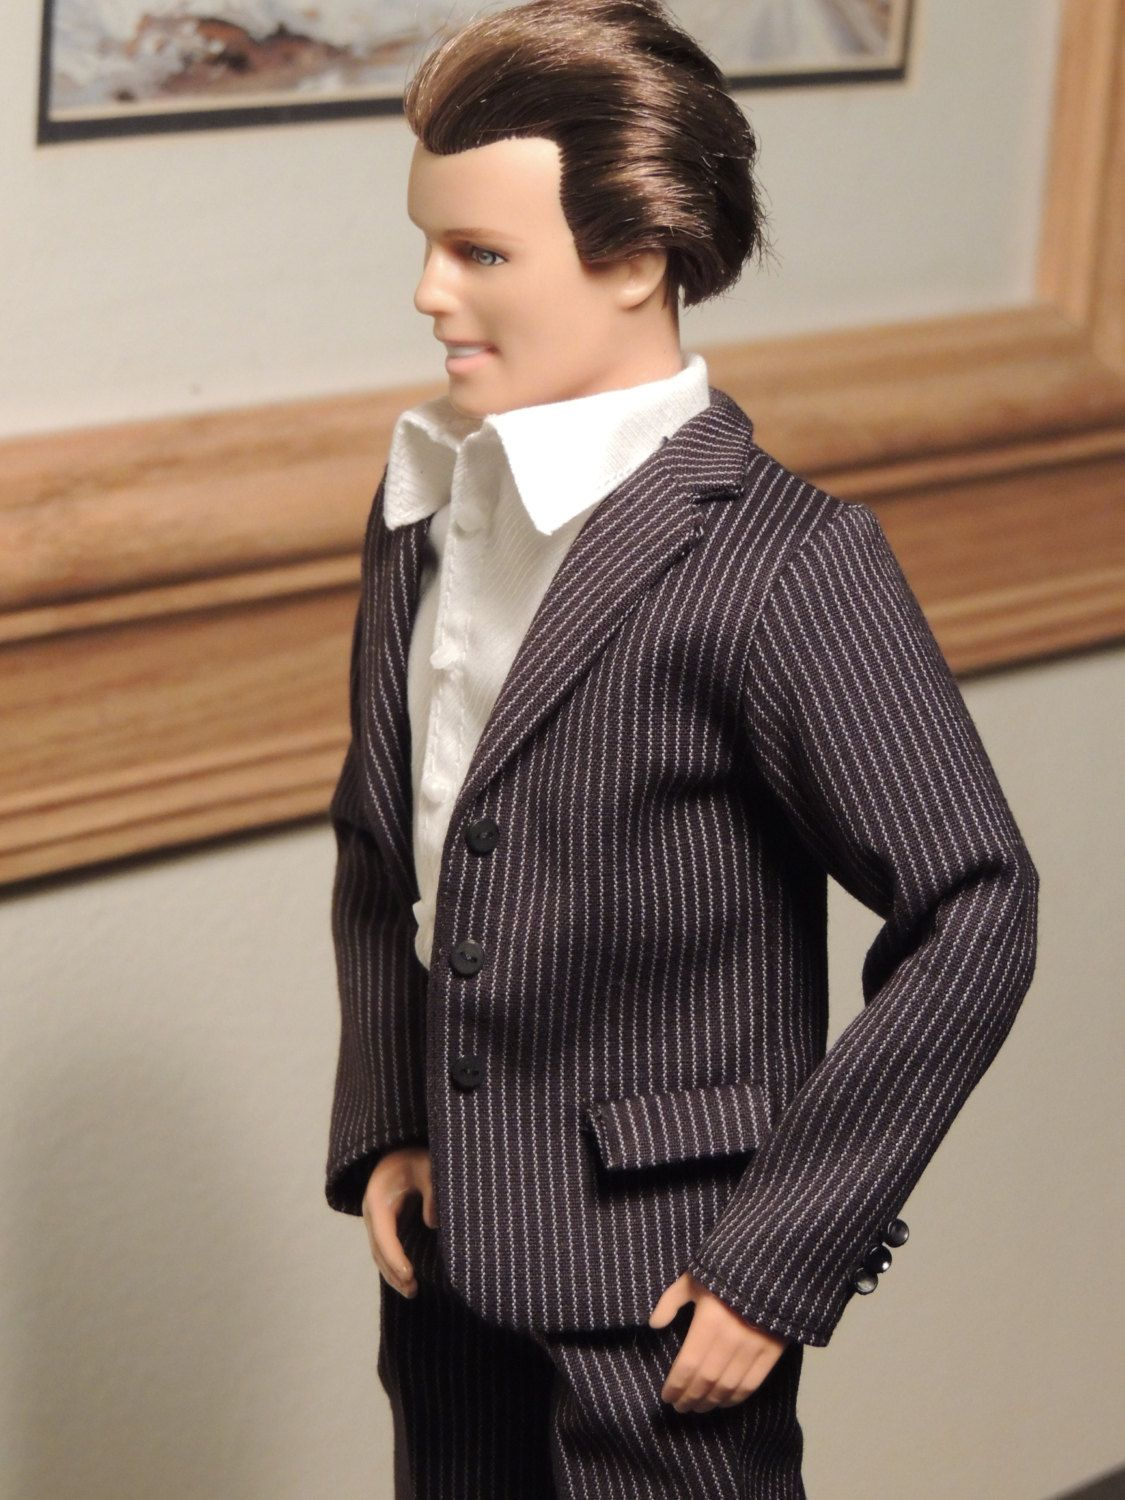 Handmade Ken doll clothes - Business Suit by KCKraftHouse on Etsy